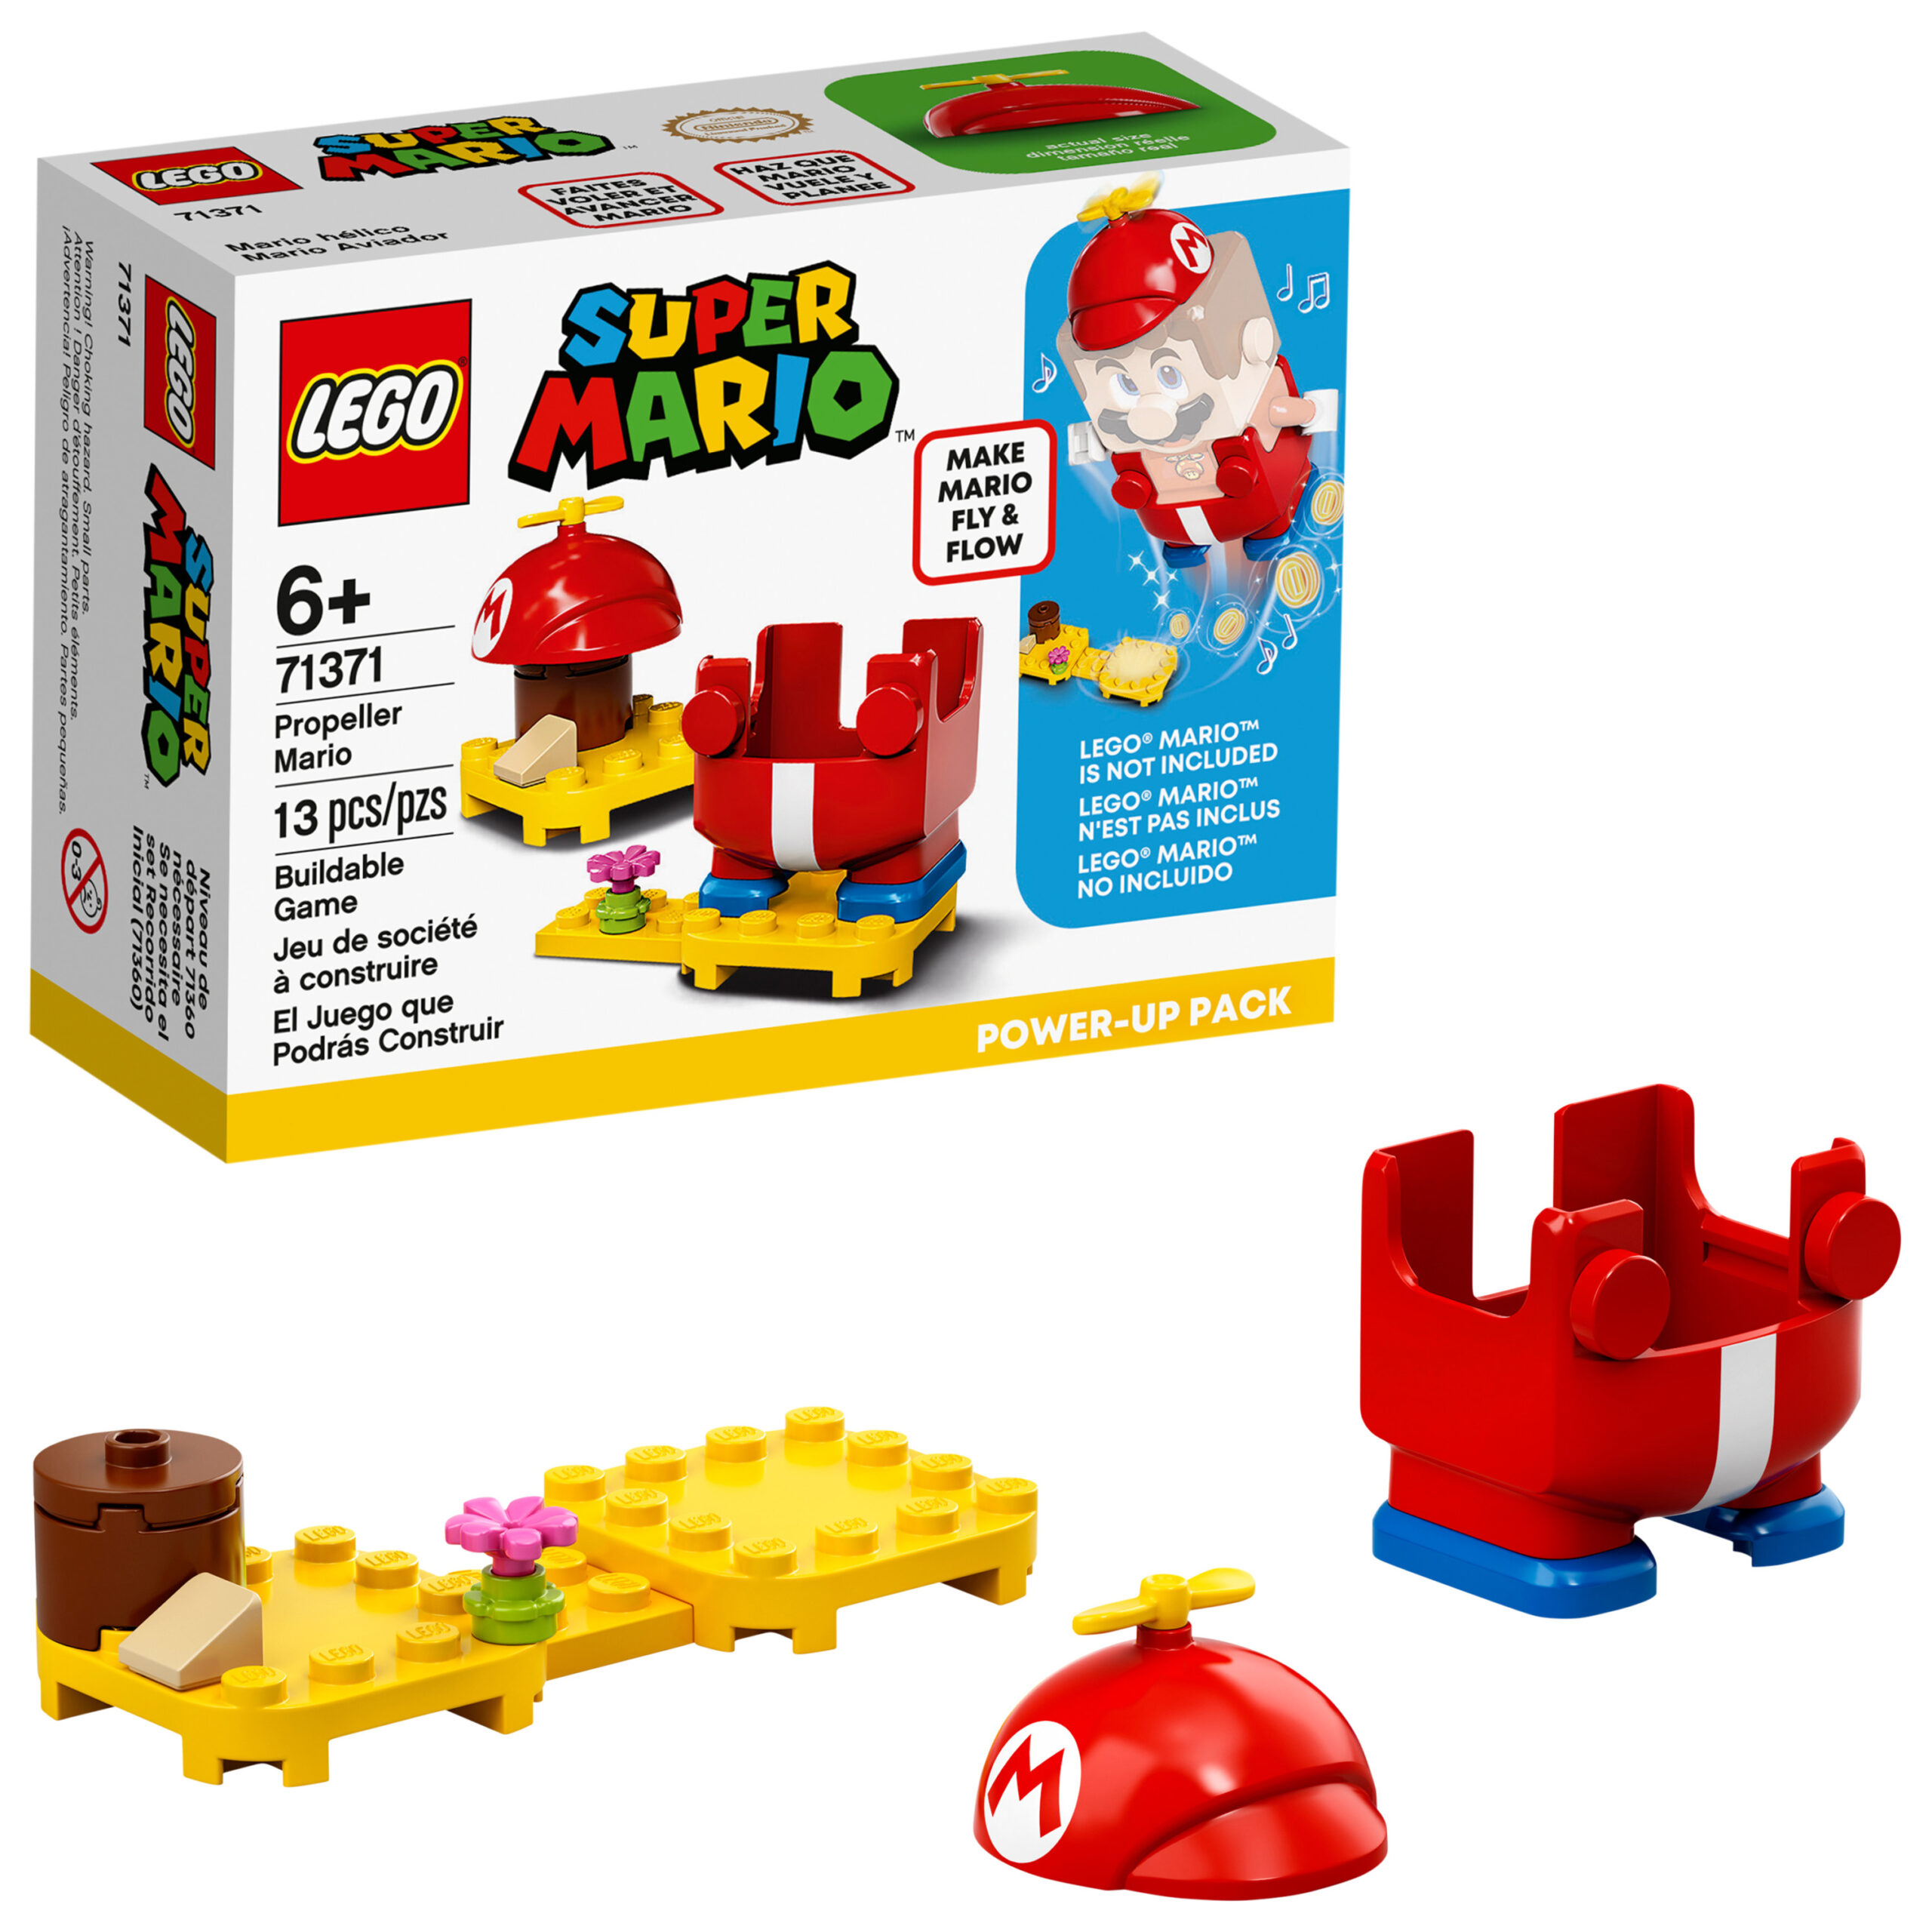 LEGO Super Mario Propeller Mario Power-Up Pack 71371 Collectible Figure Toy Accessory for Kids (13 Pieces) (Walmart)